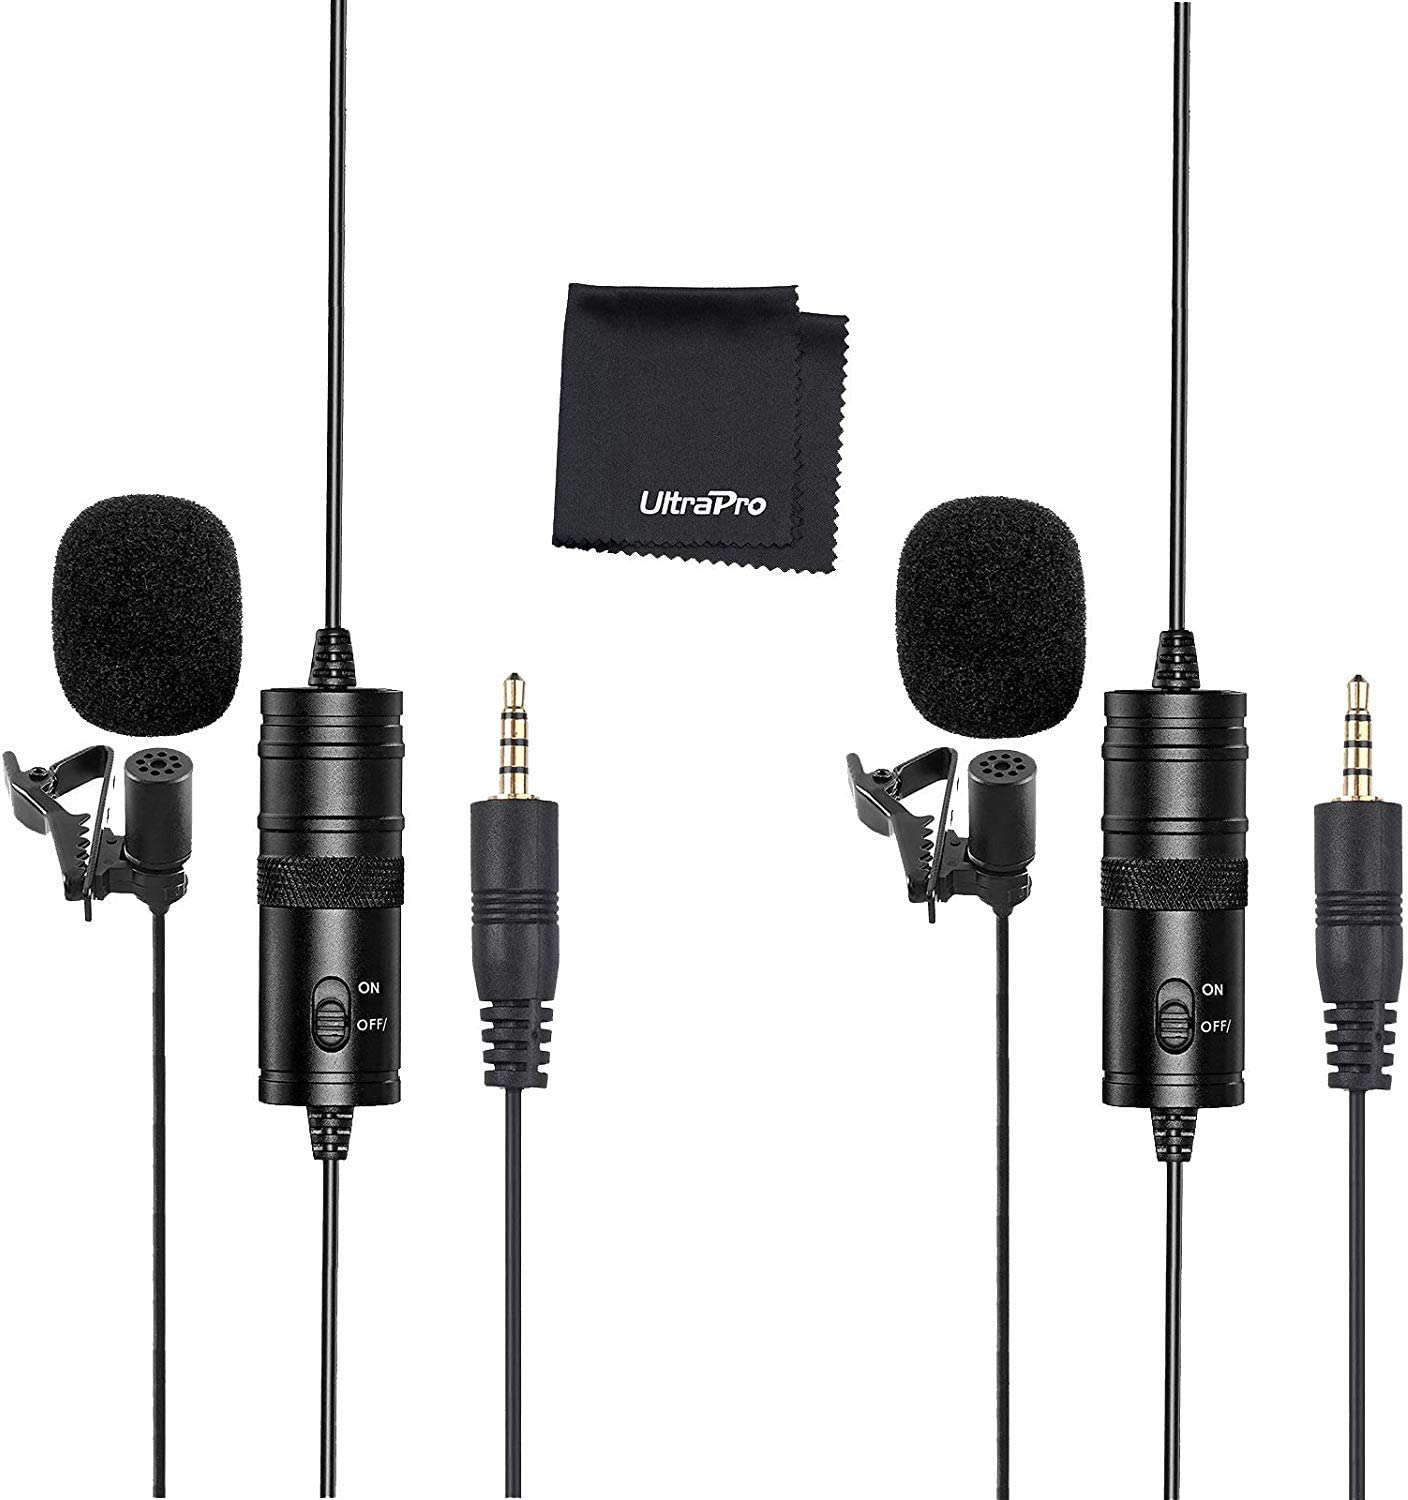 UltraPro Professional Lavalier Lapel Microphone w//20/' ft Audio Cable and More Omnidirectional Clip On Mic f//YouTube//Podcast Interview//Voice Dictation//ASMR//iPhone//Video Conference